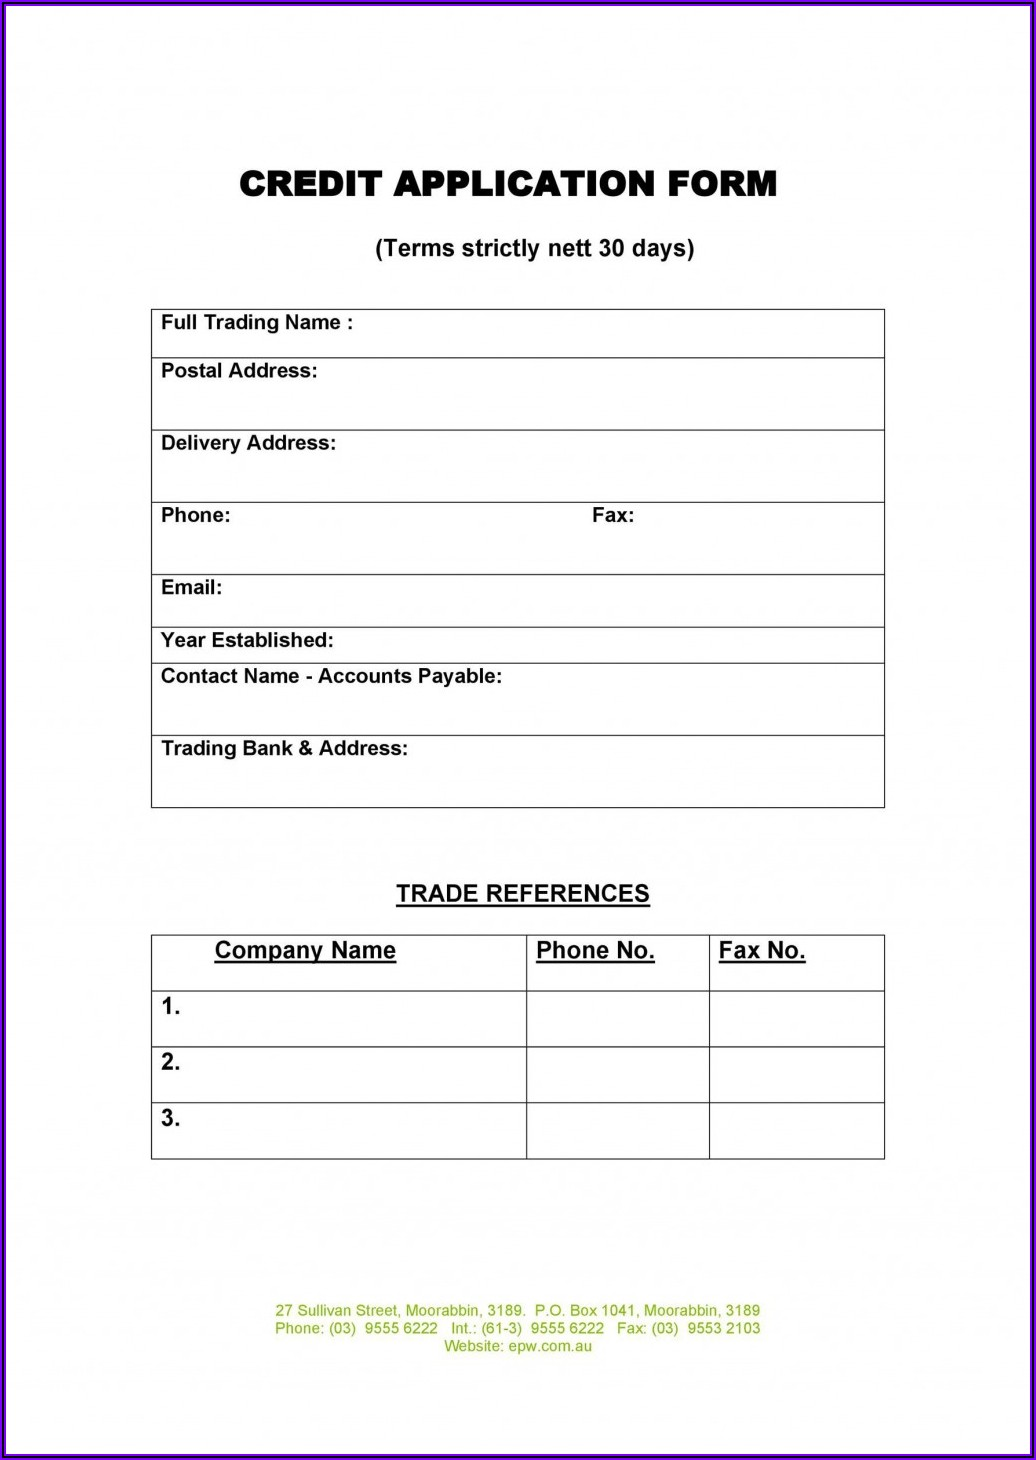 Business Credit Application Form Template Australia